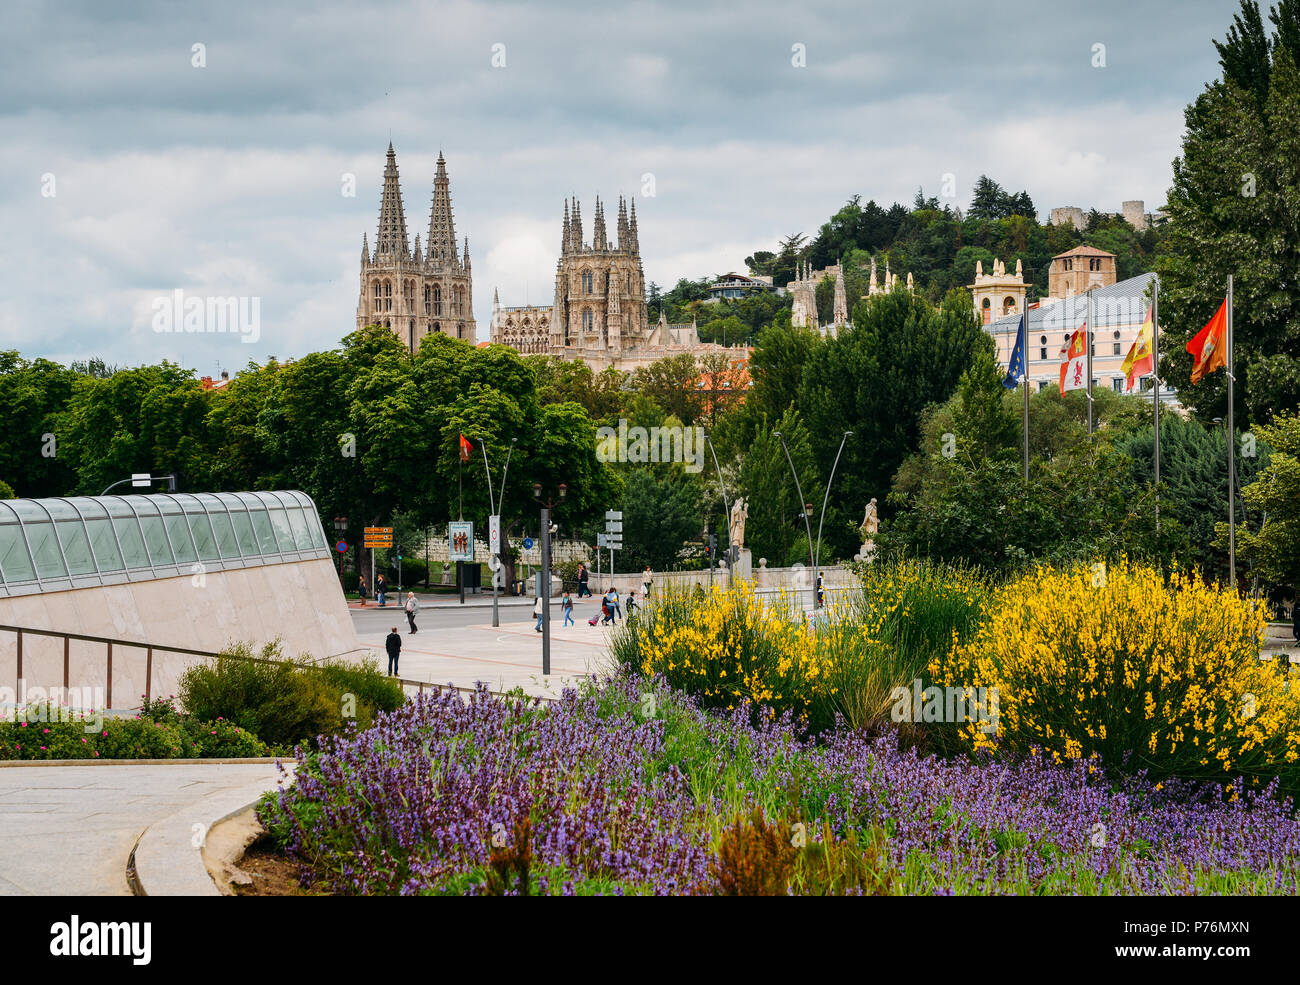 13th-century Burgos Cathedral is outstanding for the elegance and harmony of its architecture - UNESCO World Heritage designation - Stock Image